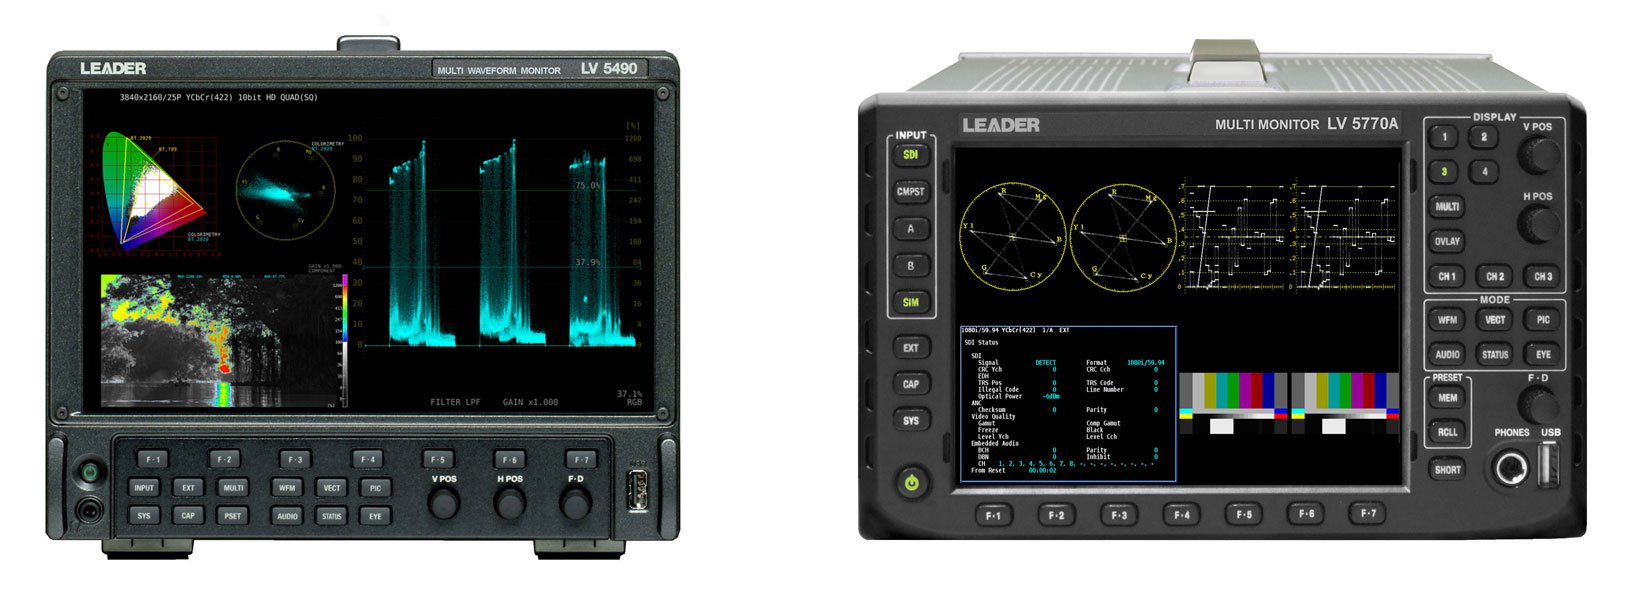 Available to buy Leader LV5490 Multi Waveform Monitors and LV5770A 3G/HD/SD Multi Monitors